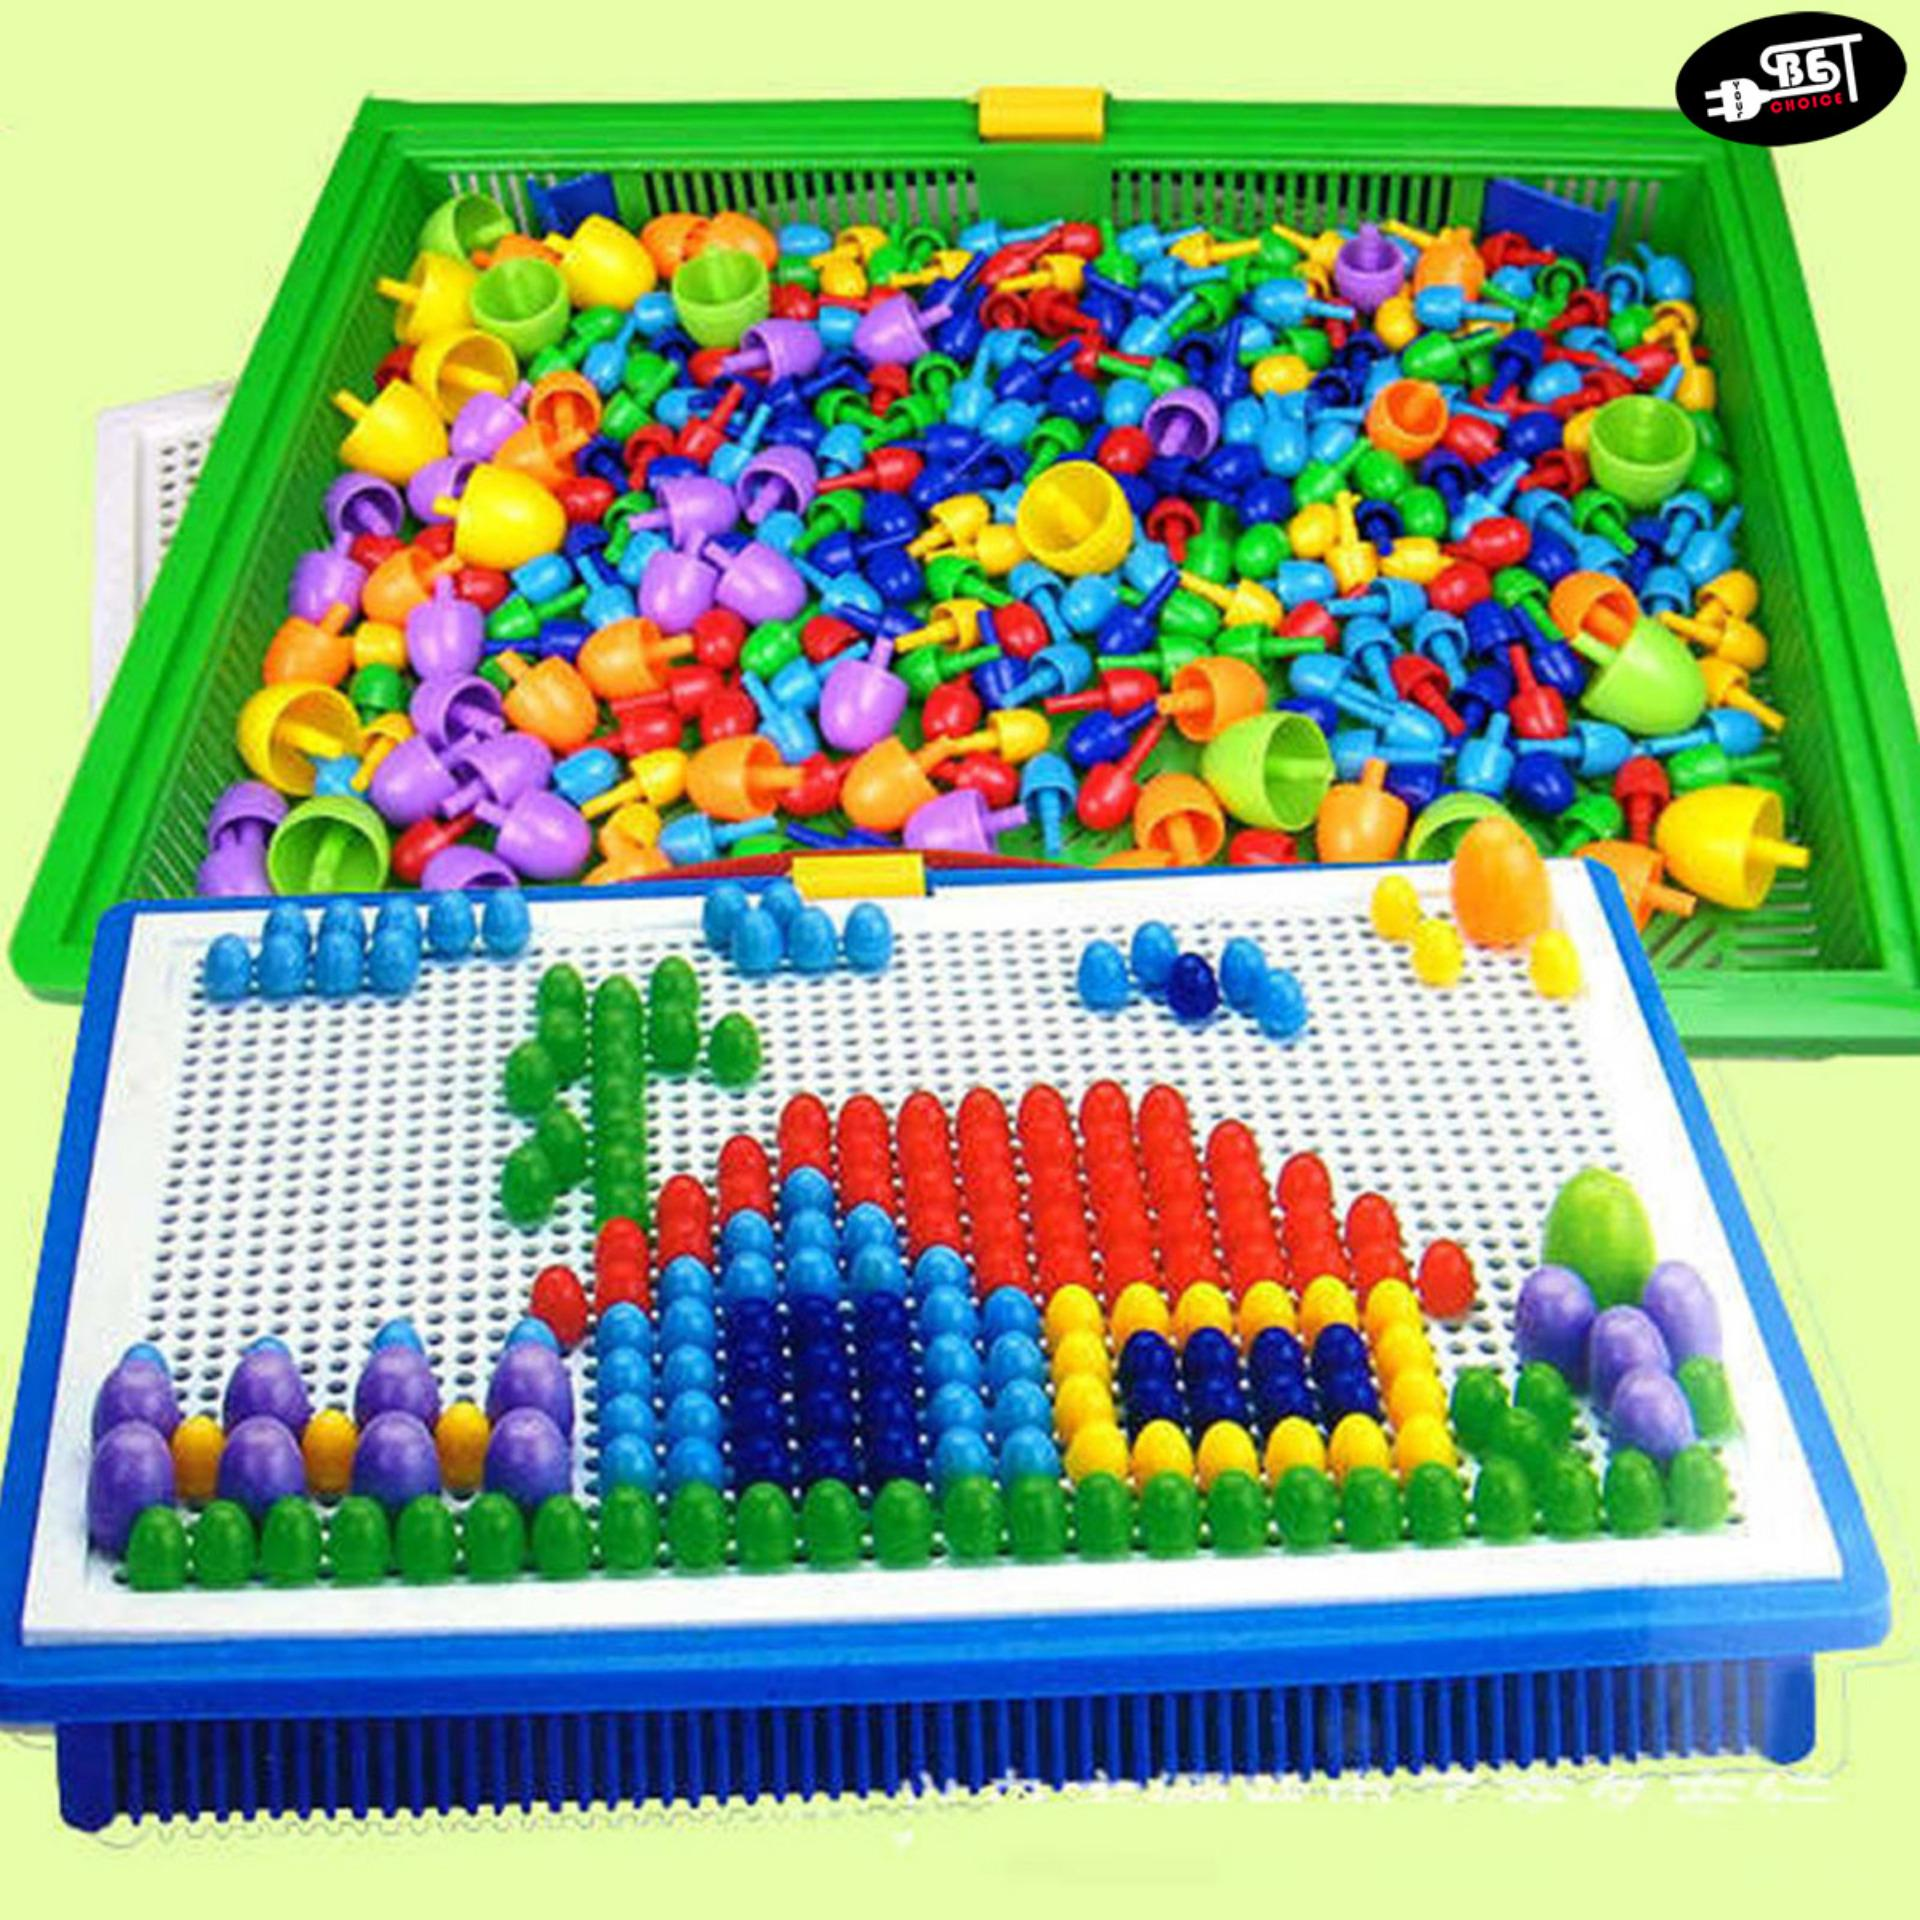 Ybc 296pcs Creative Peg Board Mushroom Nails Jigsaw Puzzle Educational Toys By Your Bestchoice.